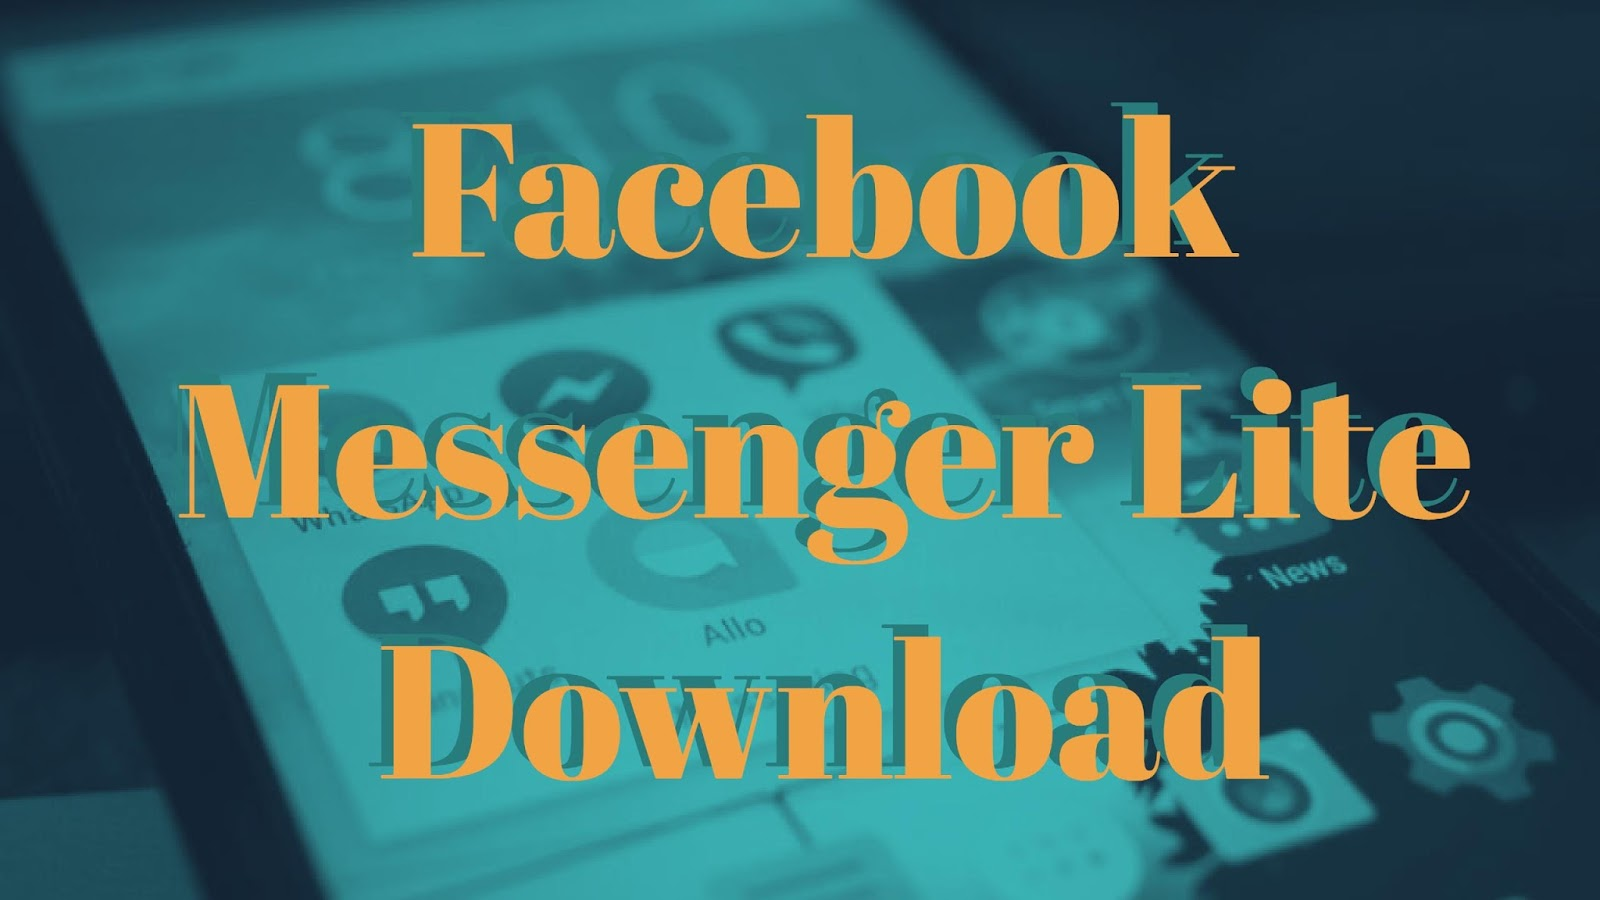 Facebook Messenger Lite download and features - T3chExpress